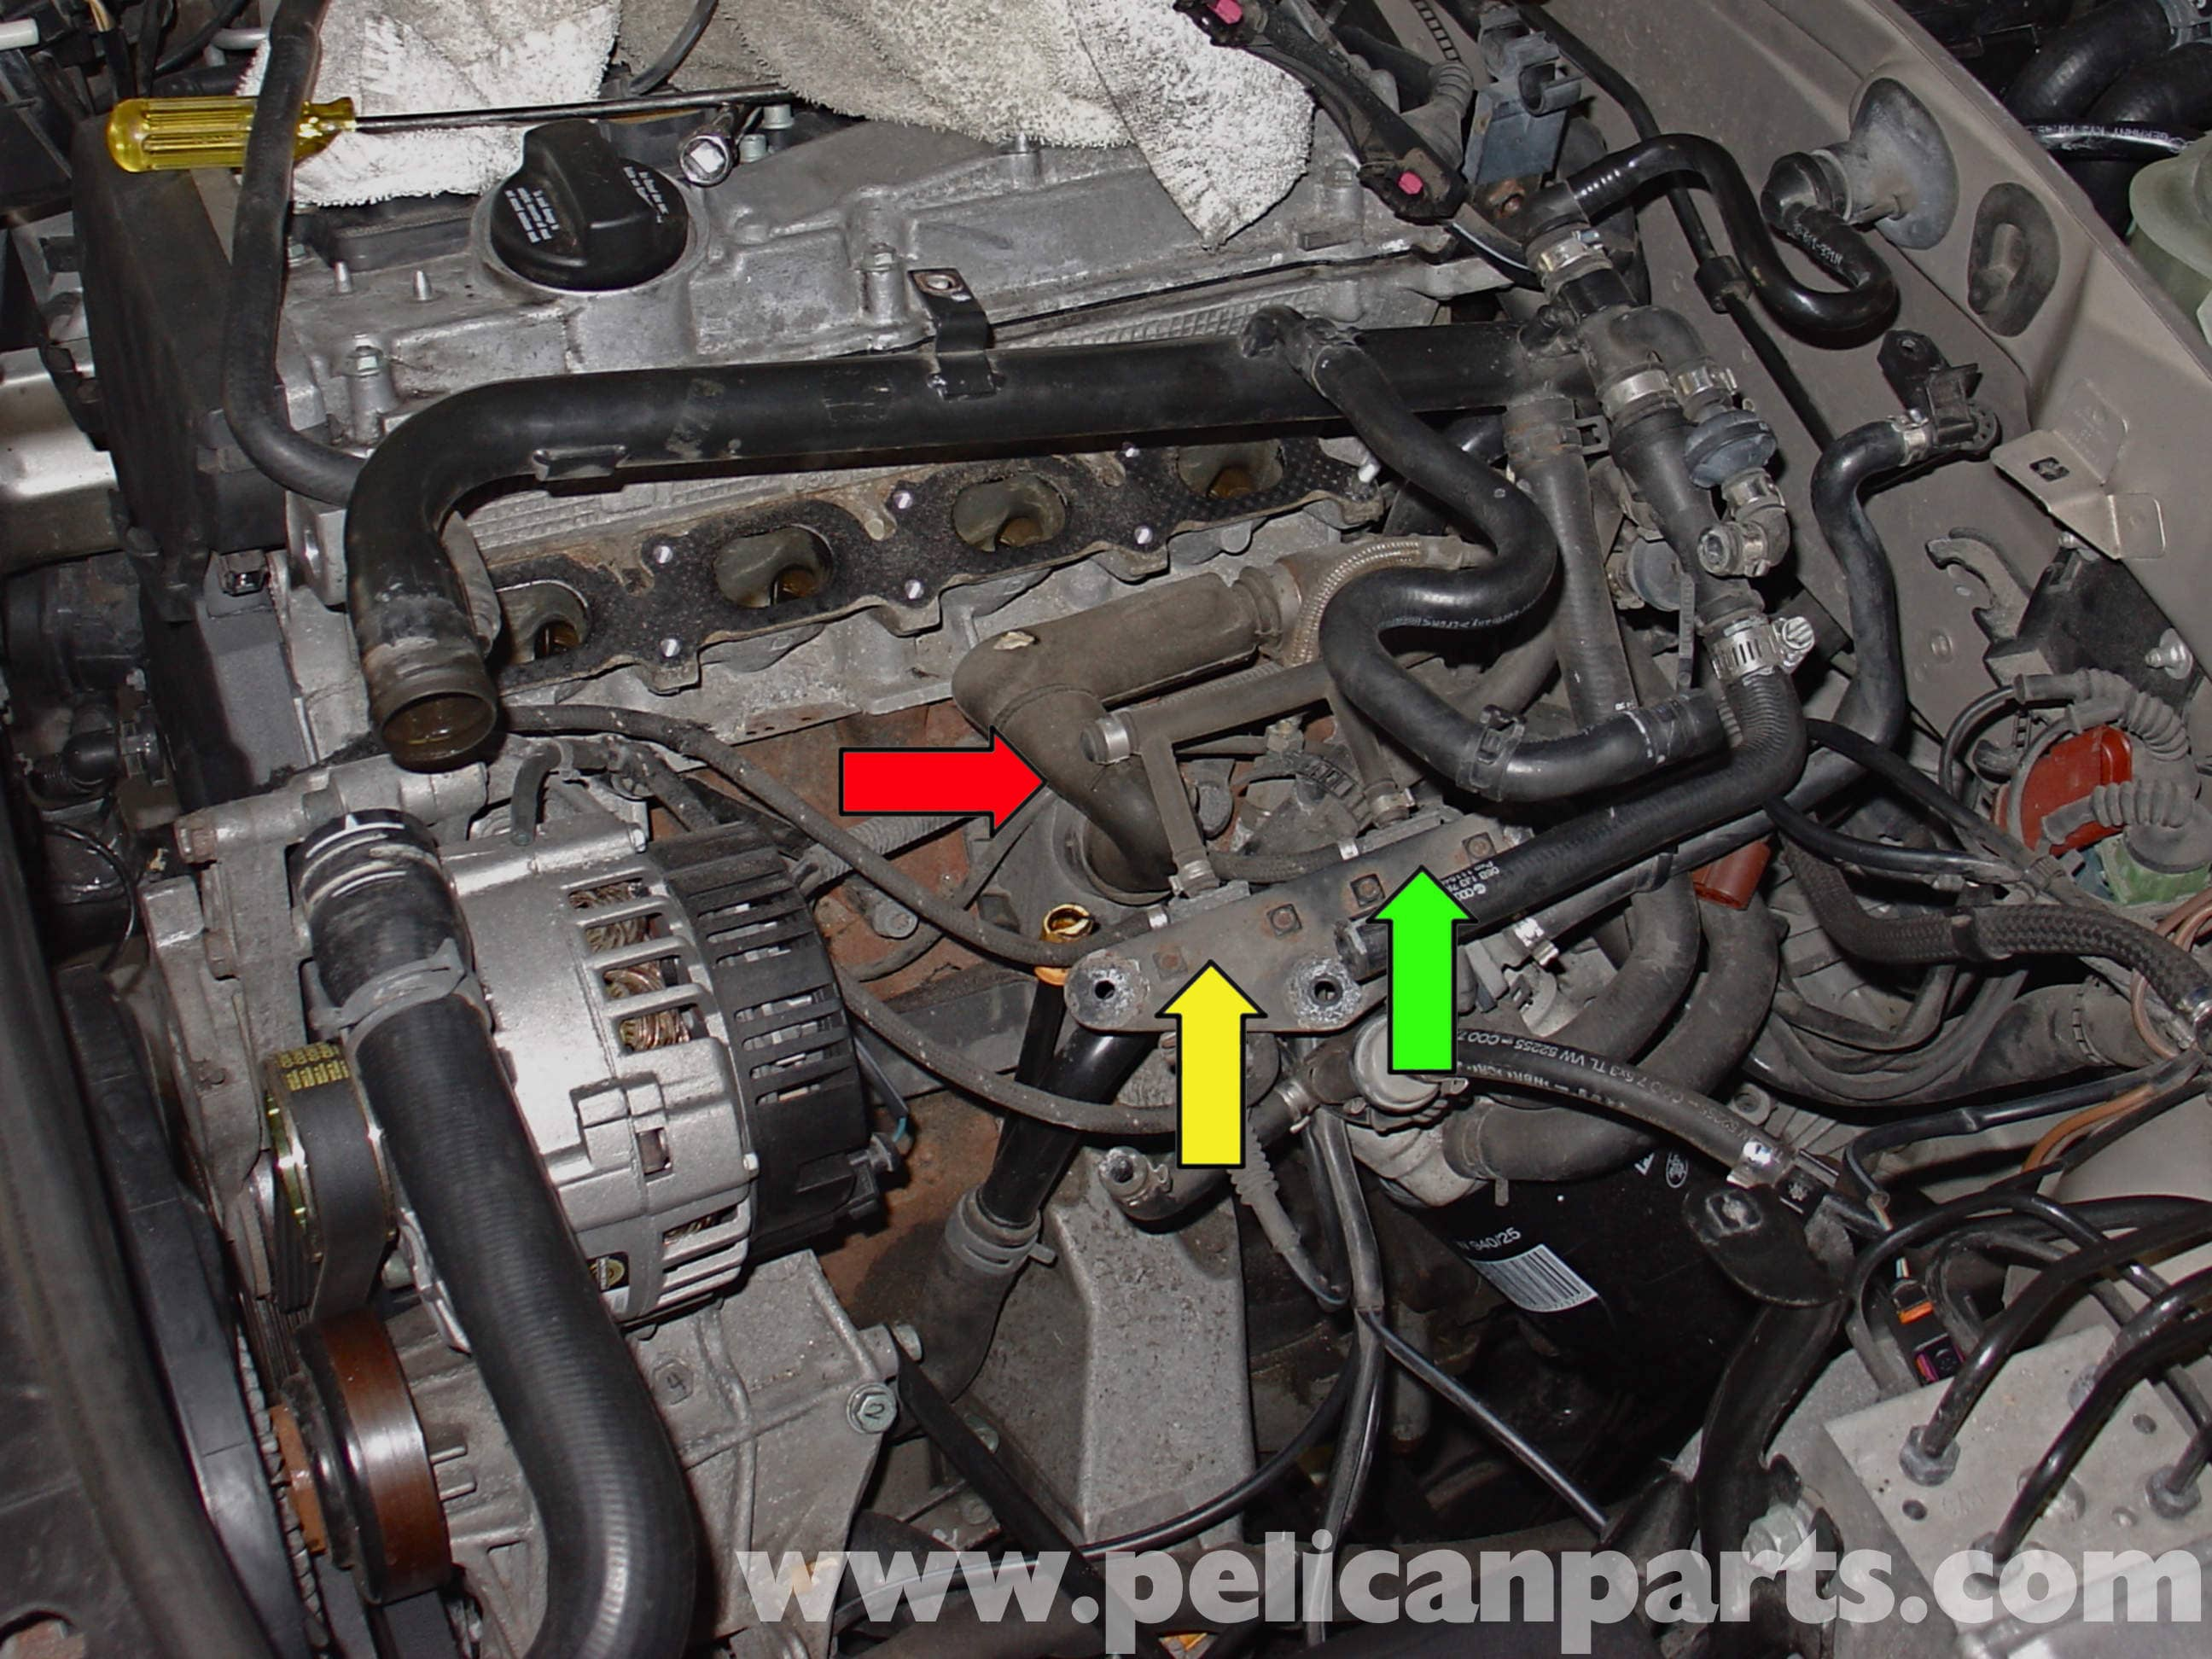 2003 Vw Passat 1 8 Turbo Engine Diagram Opinions About Wiring 2002 Cabrio Fuse Panel Audi A4 B6 Fixing Common Vacuum Leaks 2008 Pelican Parts Rh Pelicanparts Com